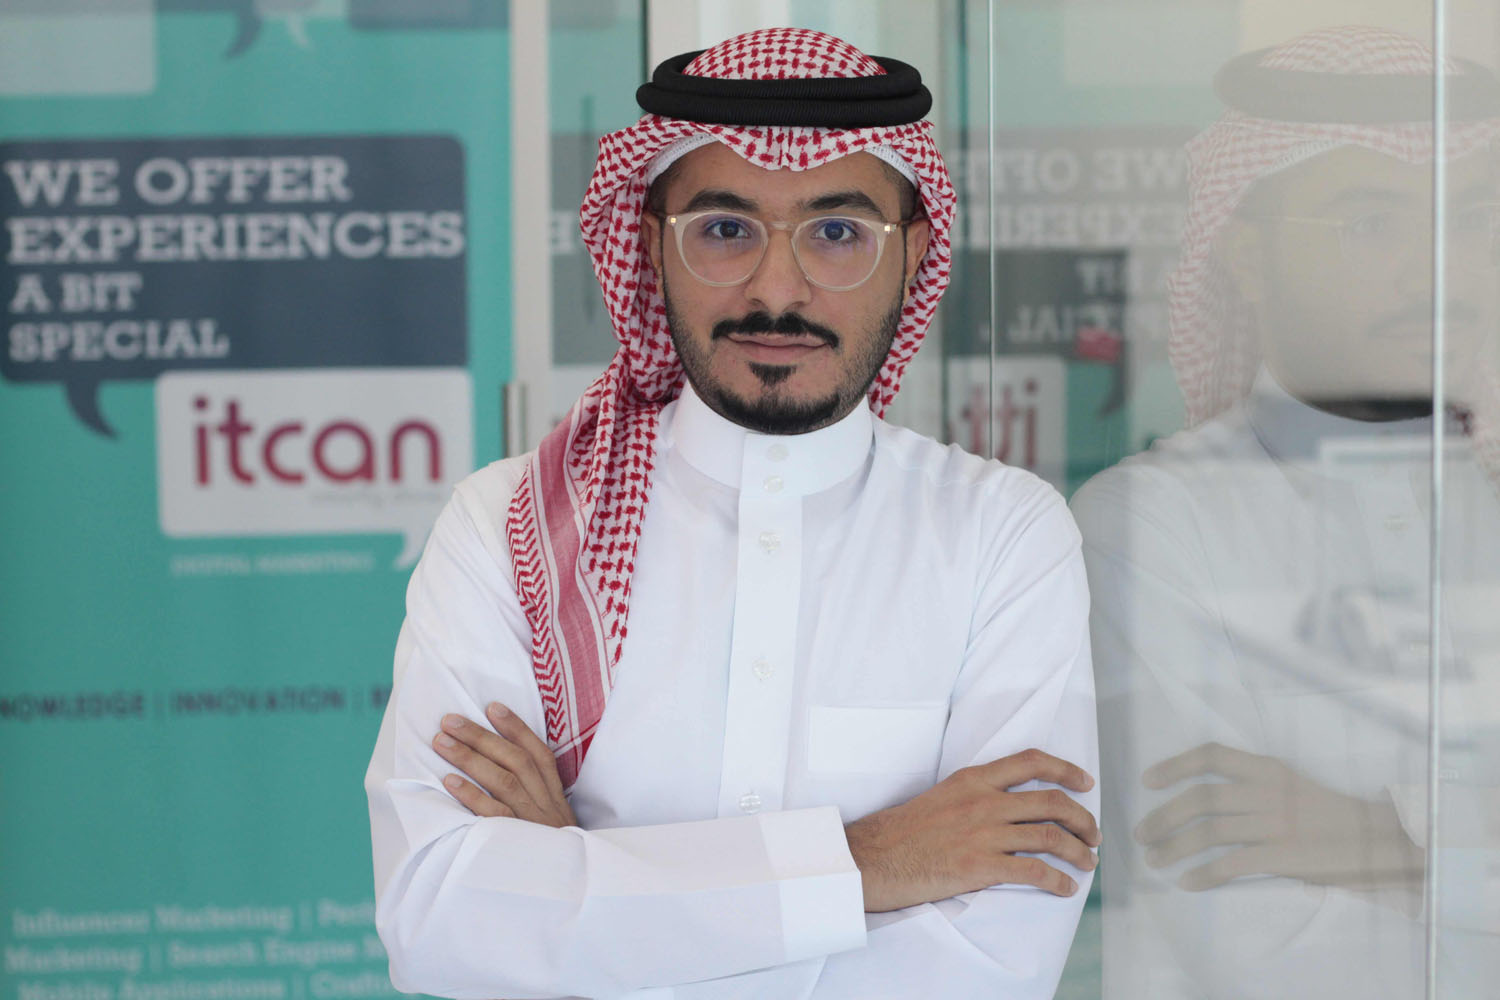 Mansour-Al-Thani-CEO-Co-founder-itcan.jpg